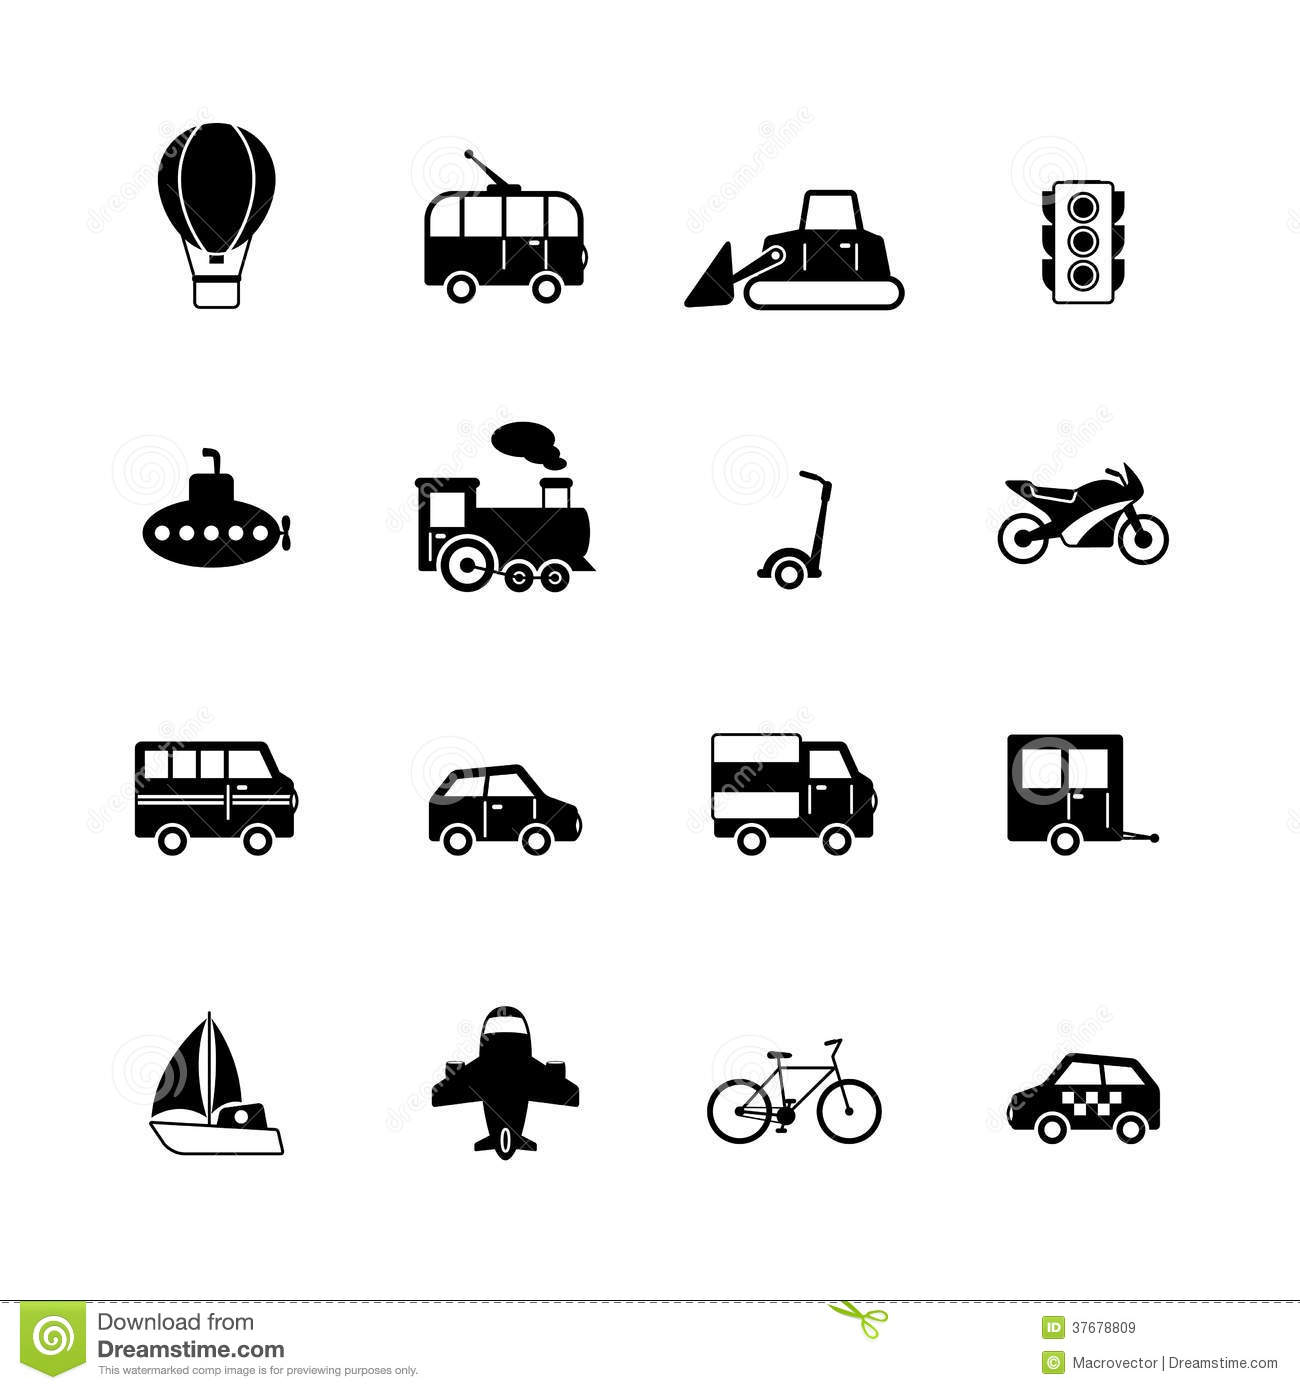 Transportation Pictograms Collection Royalty Free Stock